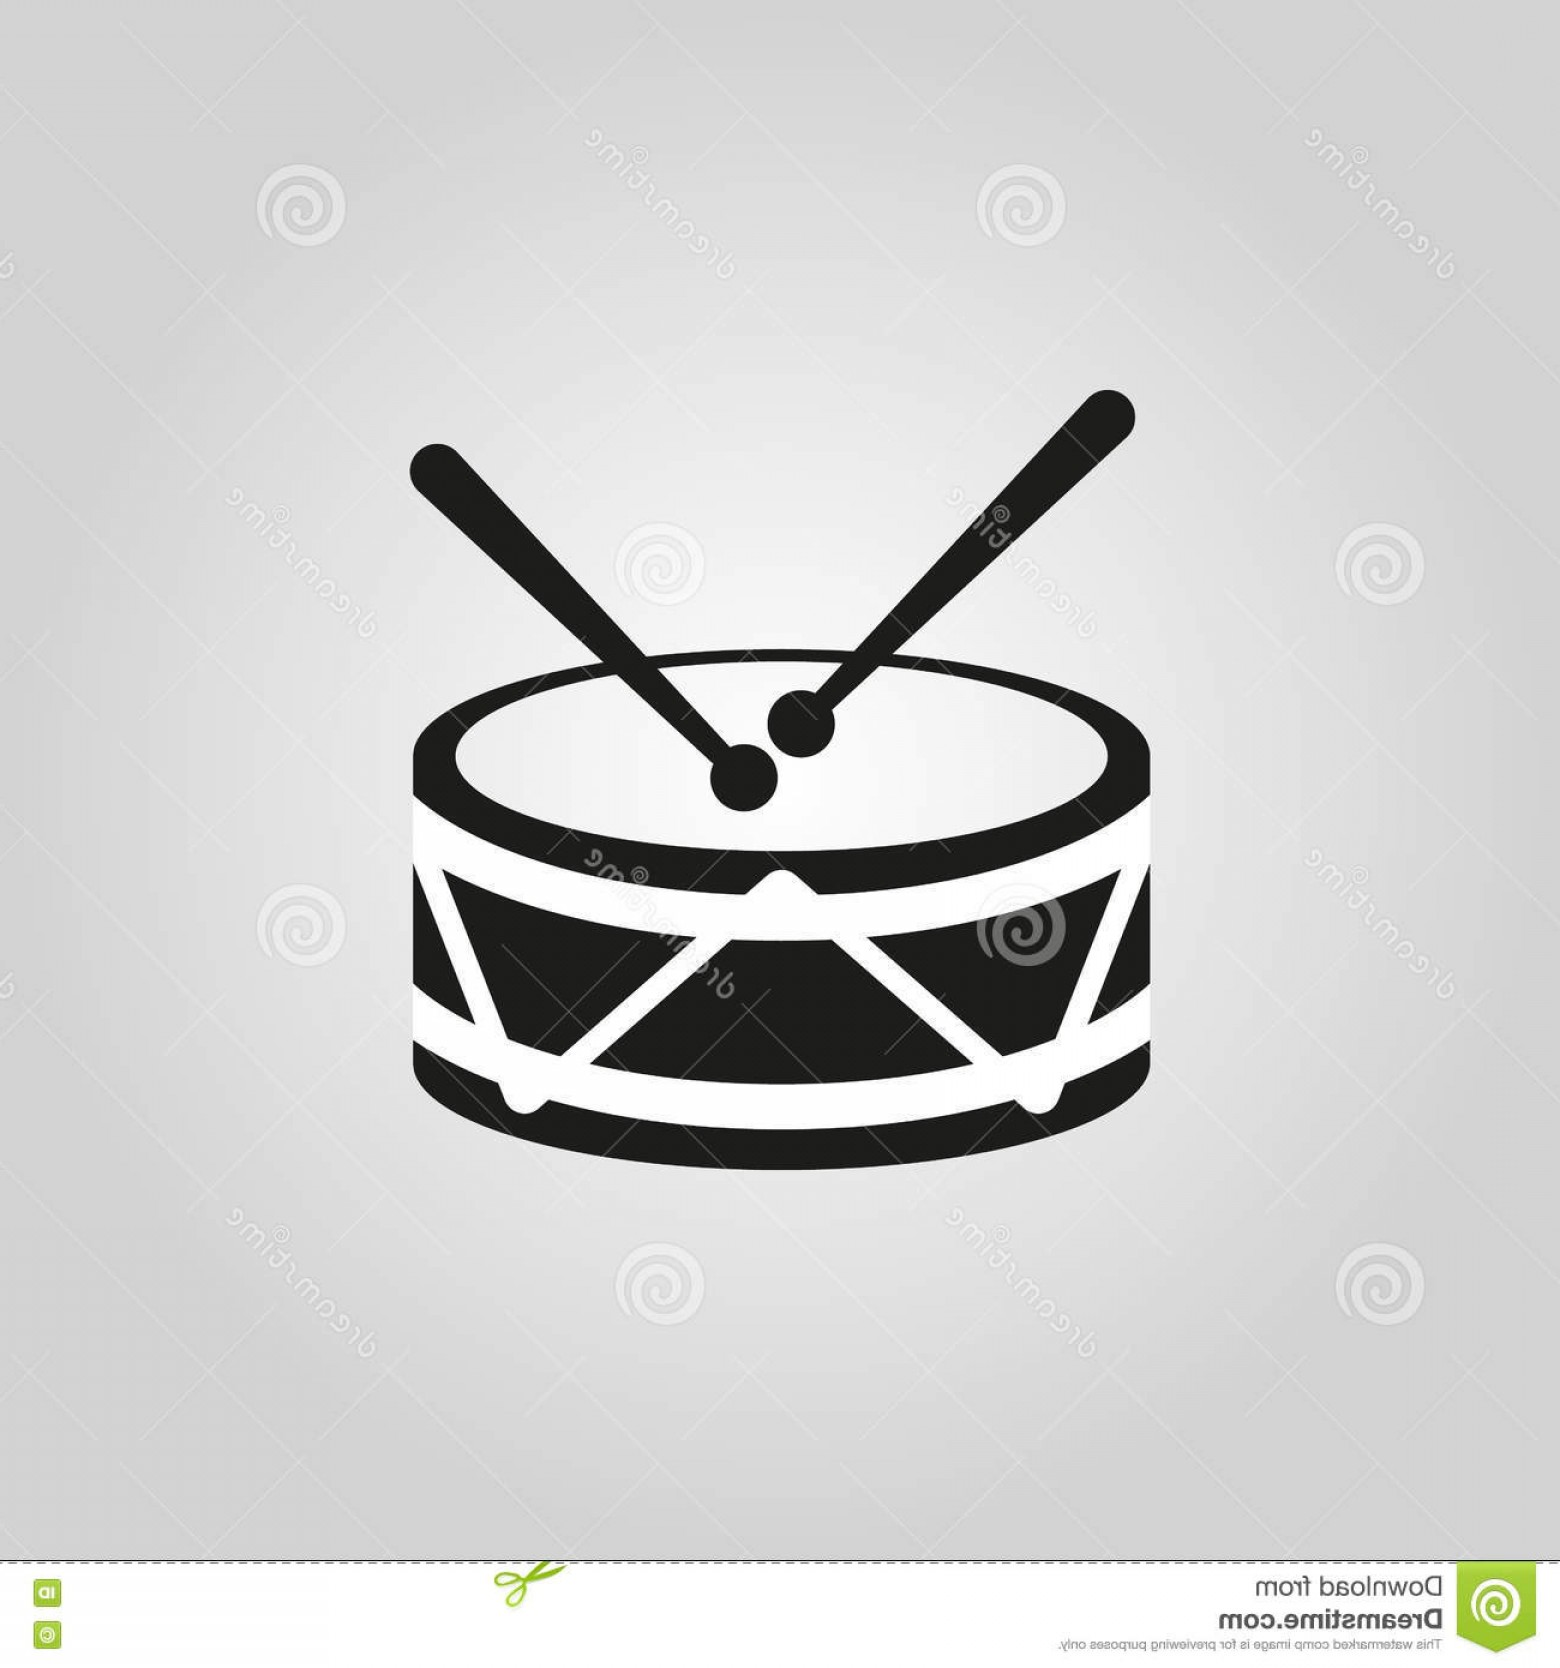 Kick Drum Vector: Stock Illustration Parade Drum Icon Image Vector Illustration Design Image